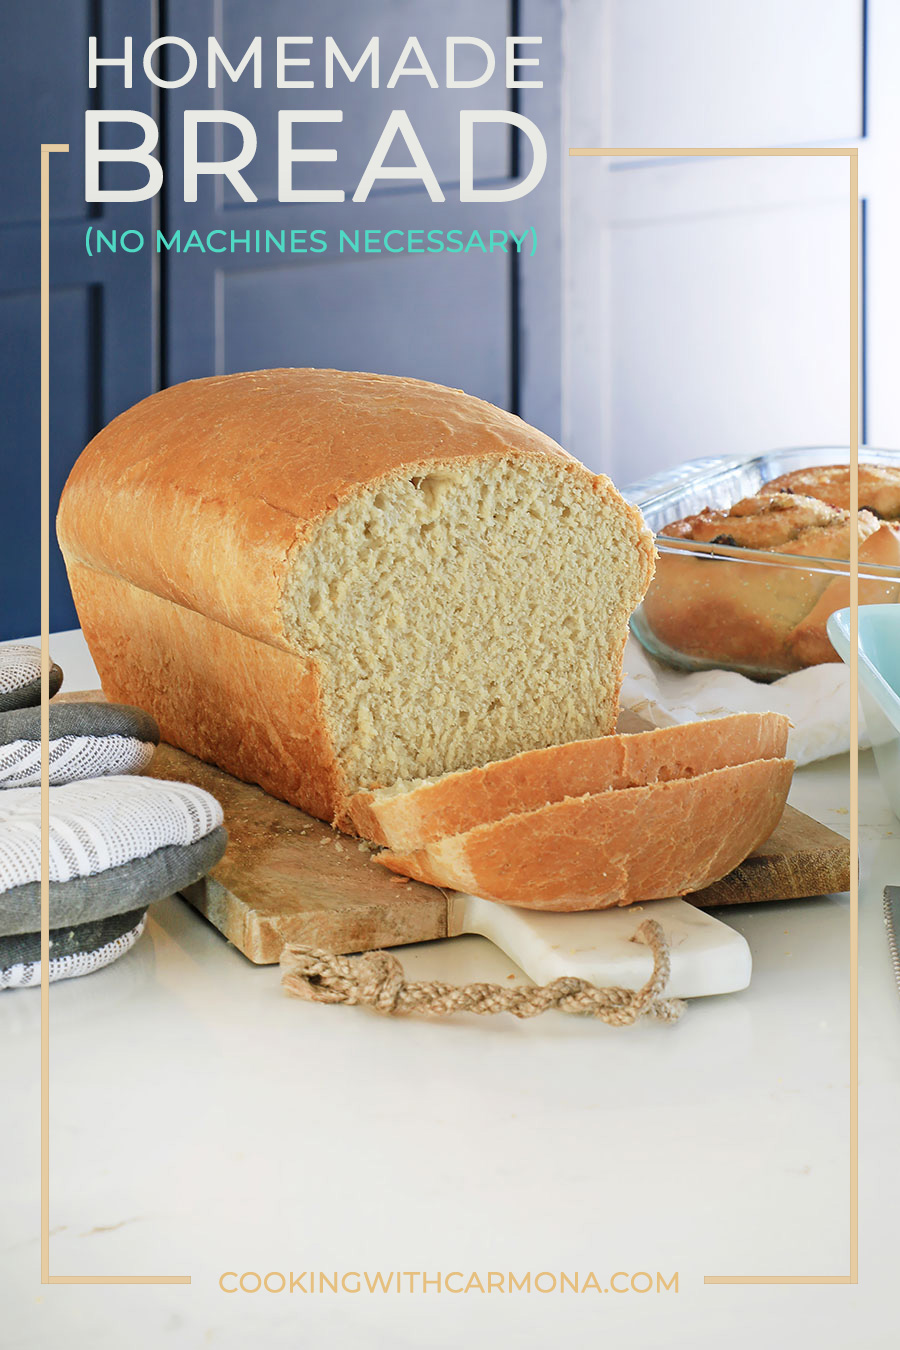 Homemade bread (no machines necessary)